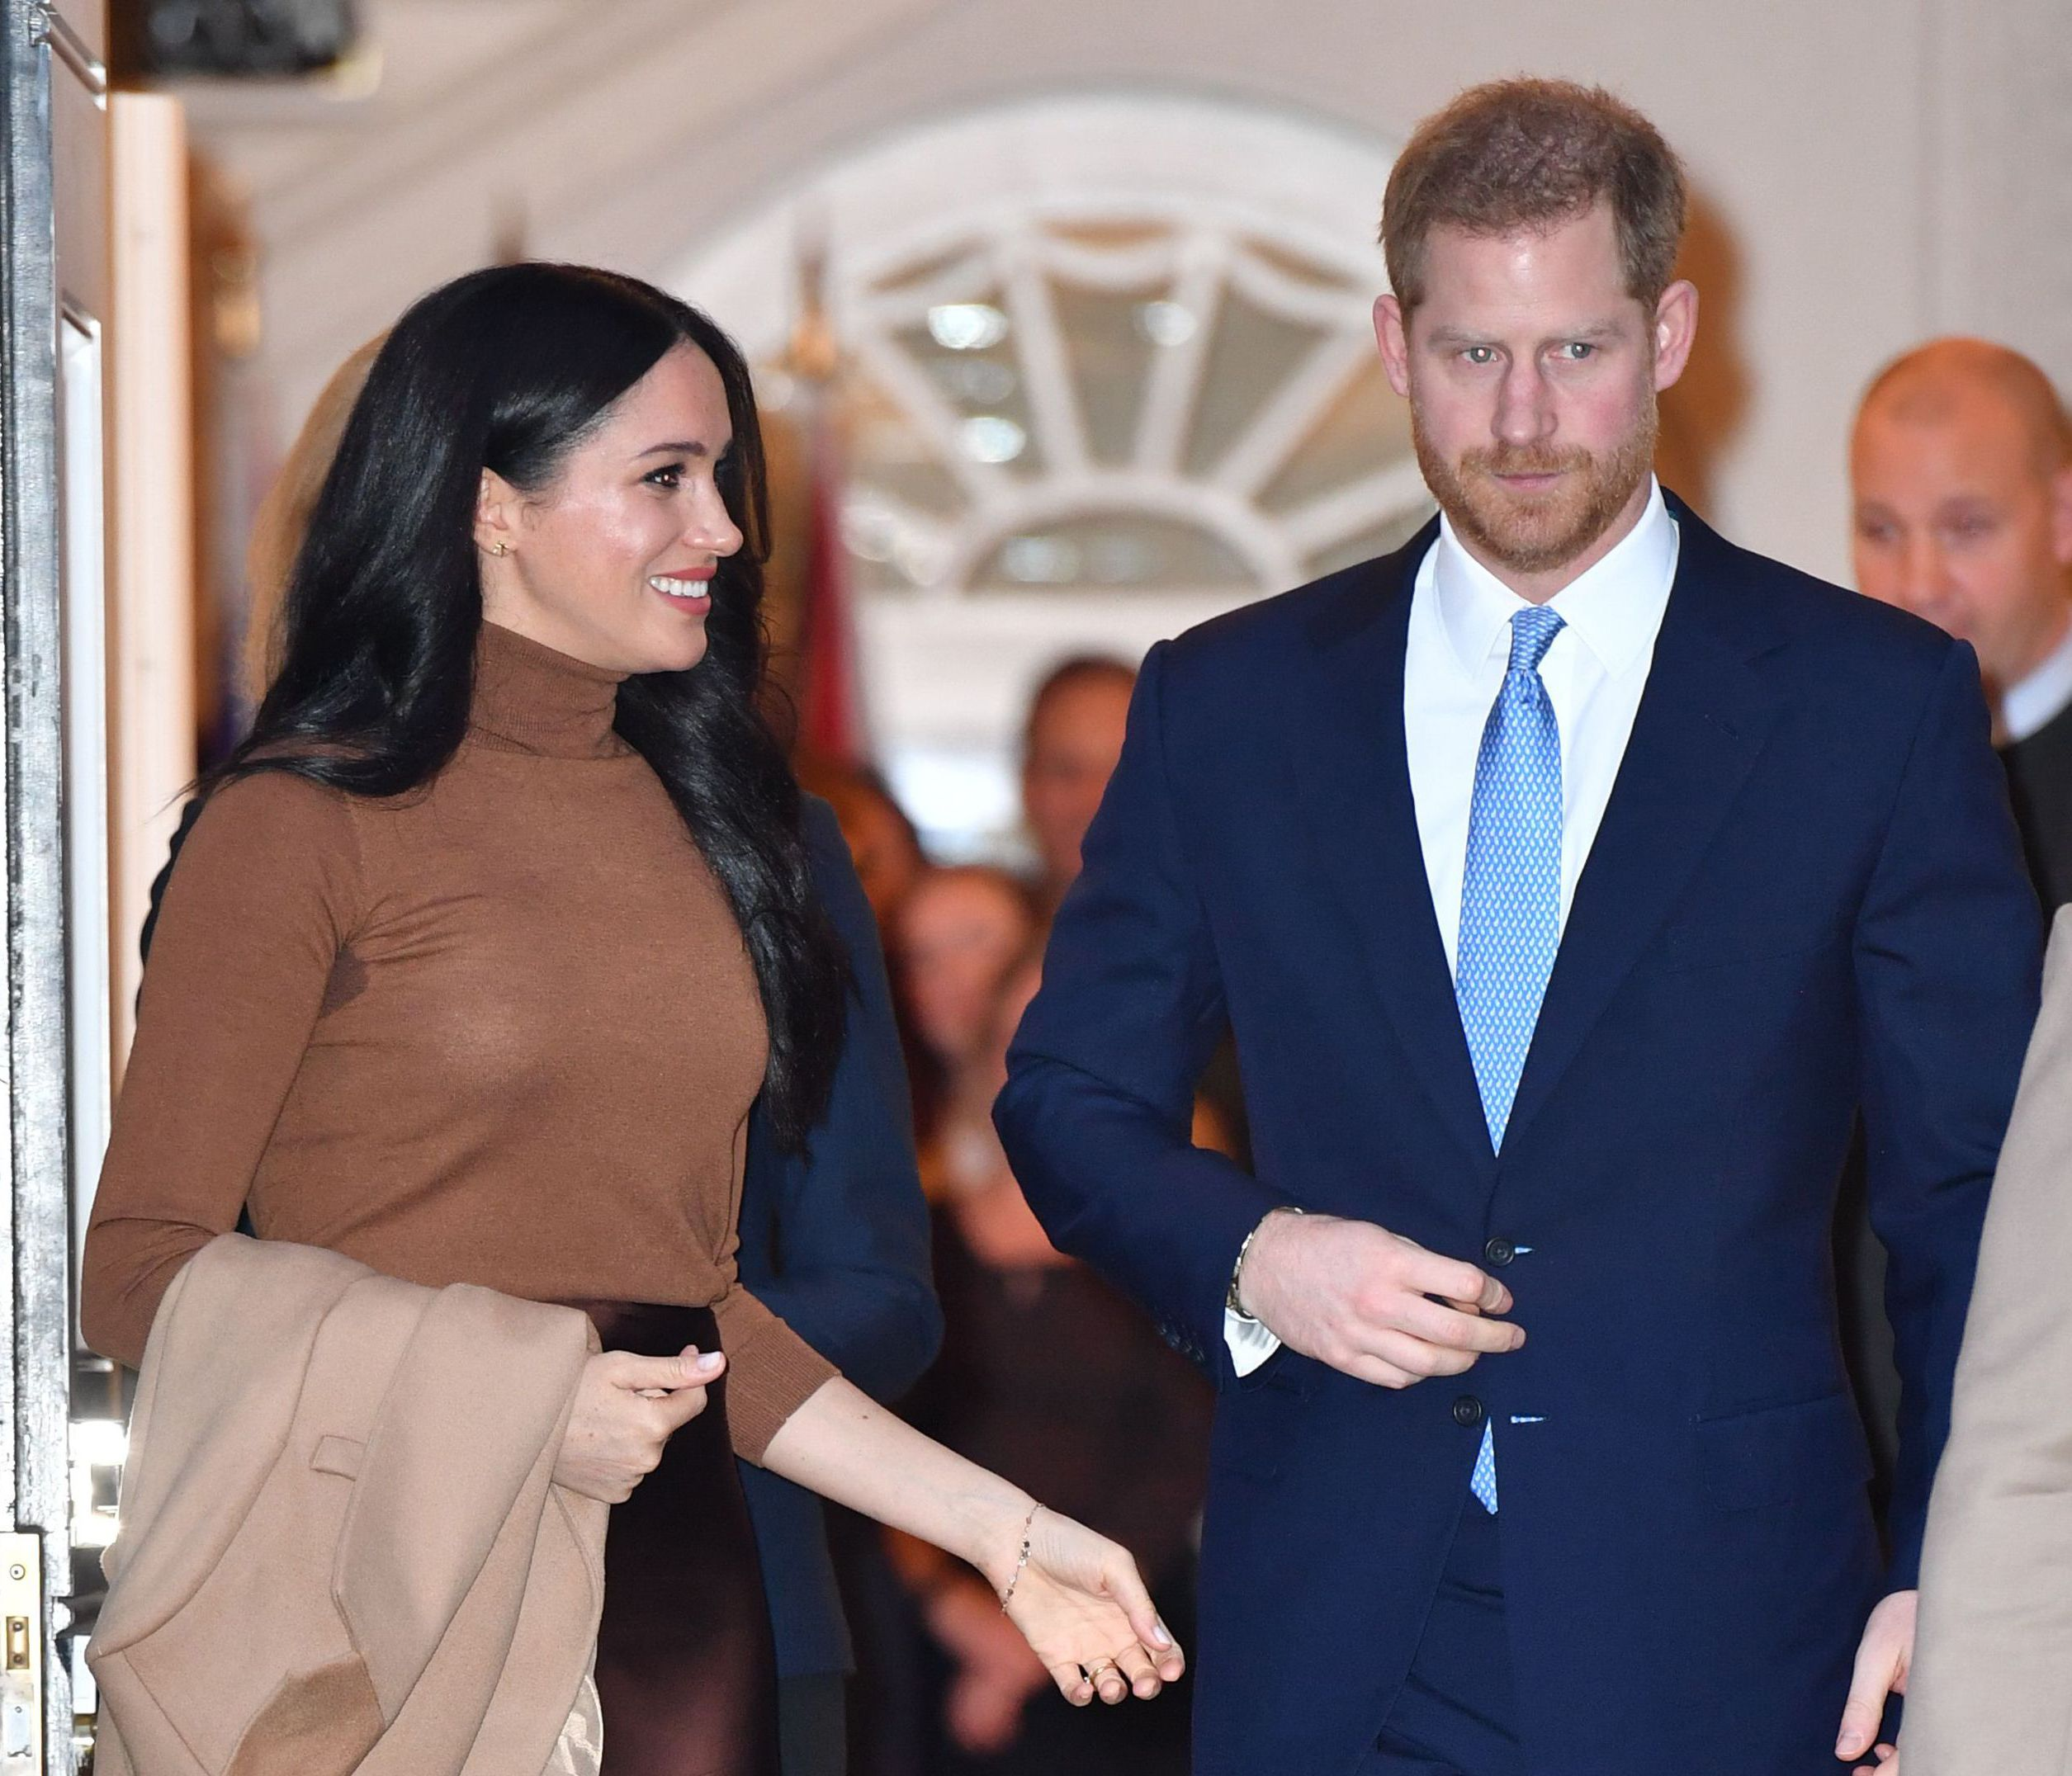 harry and meghan withdraw trademark applications plan new course wwd https wwd com fashion news fashion scoops harry and meghan withdraw sussex royal trademark applications 1203503026